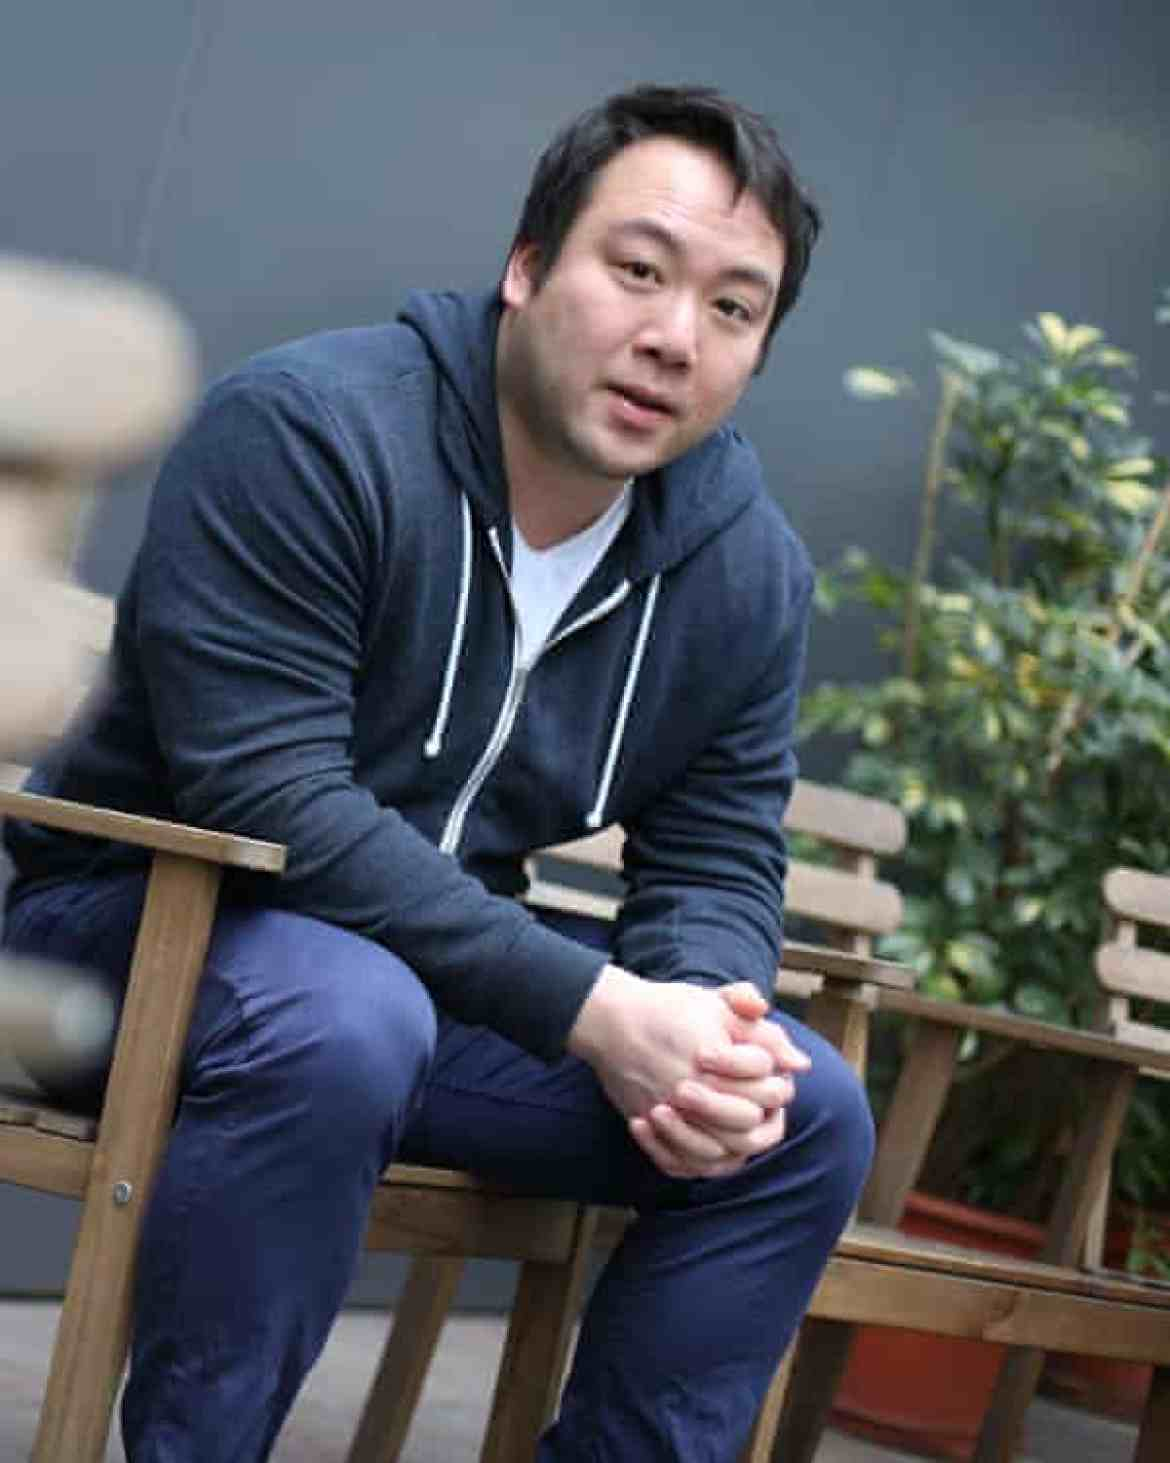 Deliveroo founder William Shu.